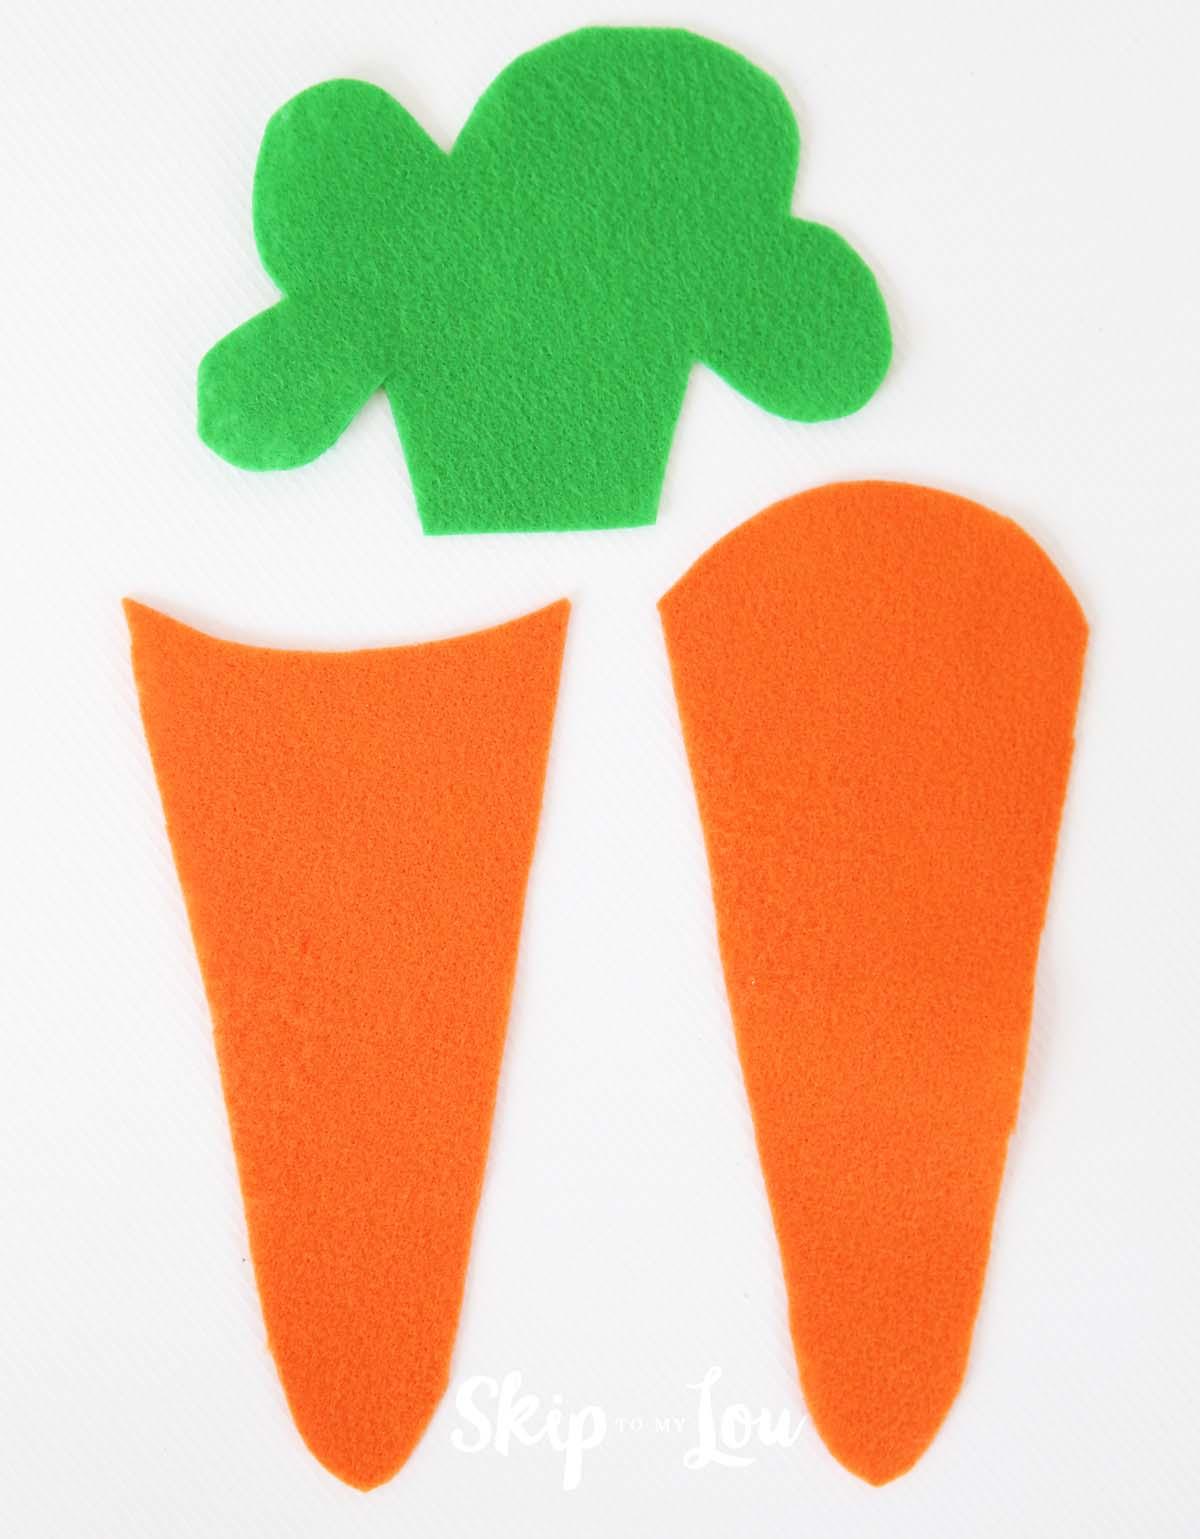 felt carrot pencil holder tutorial